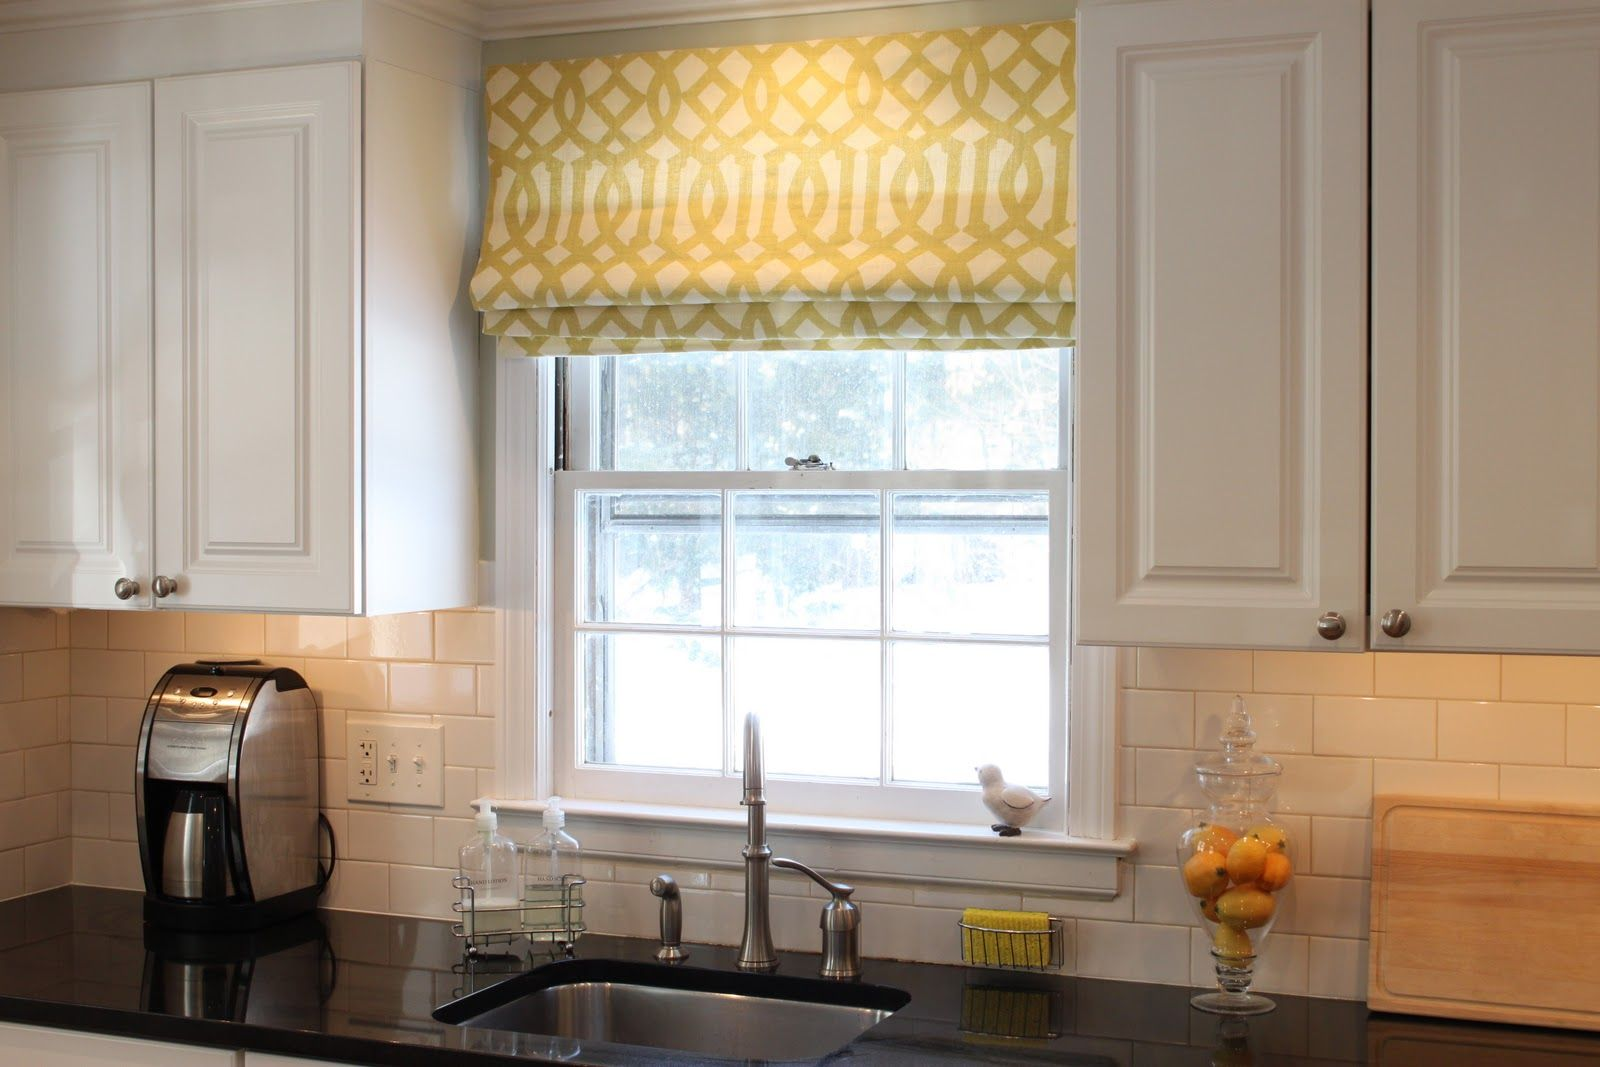 Kitchen window over sink  roman shade in a bright floral for over the kitchen sink windows